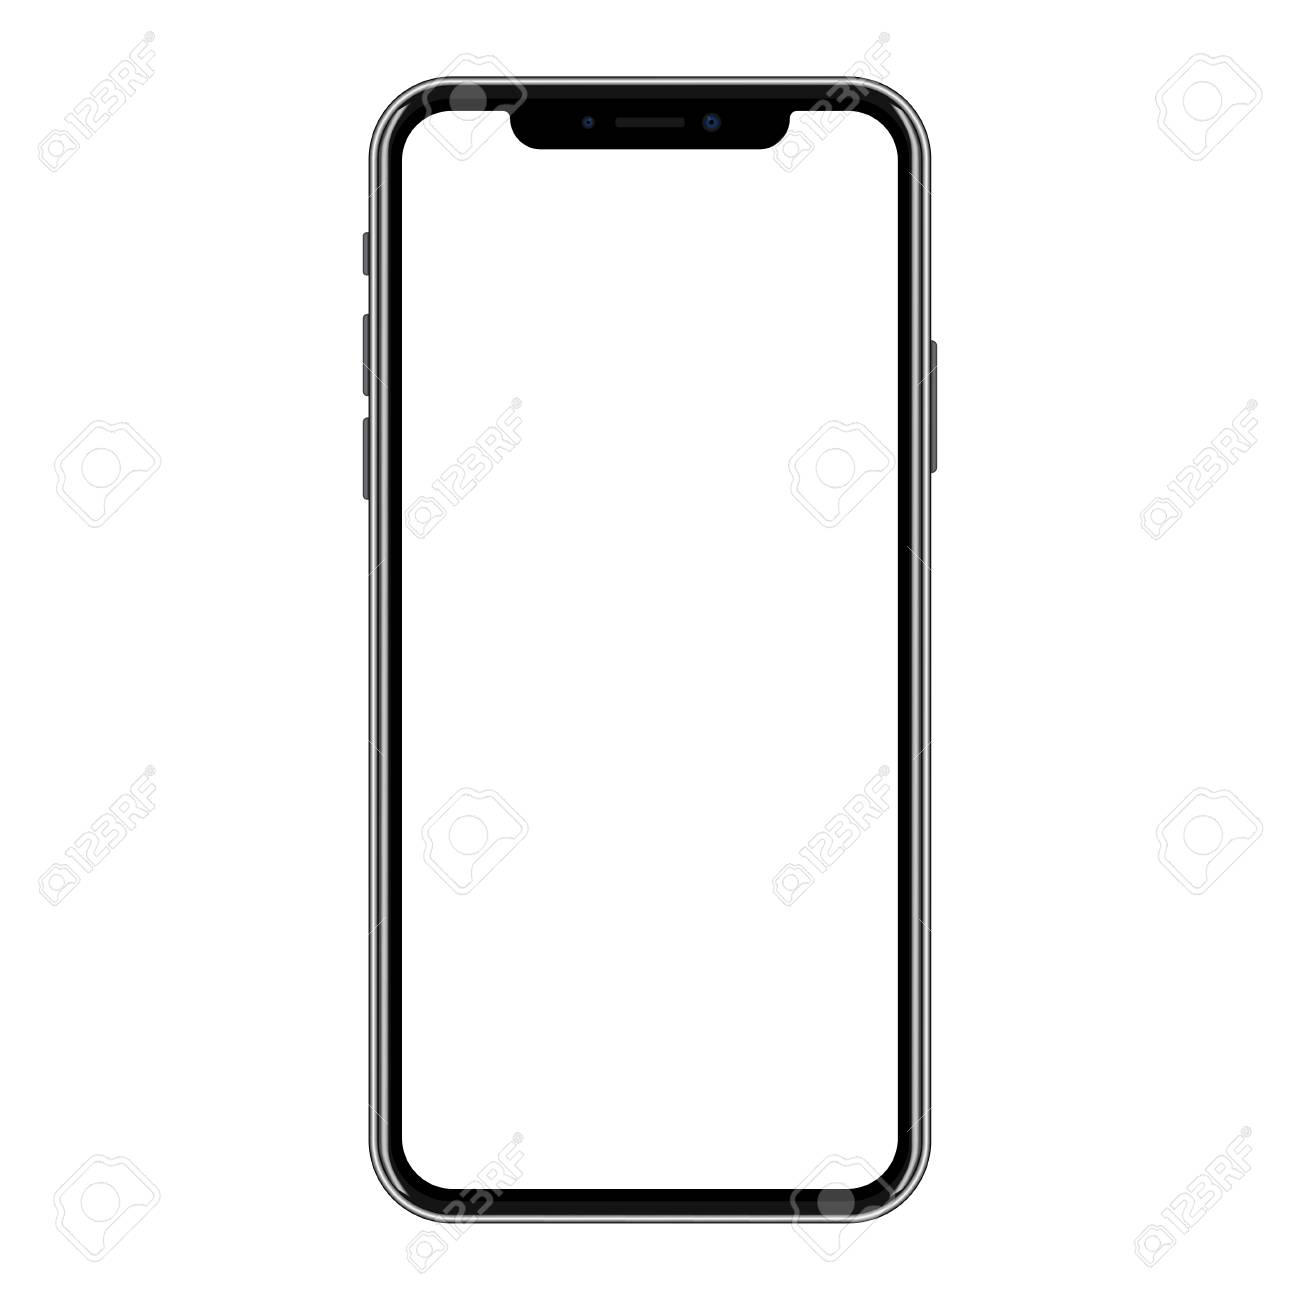 New version of black smartphone with blank white screen. - 90149643